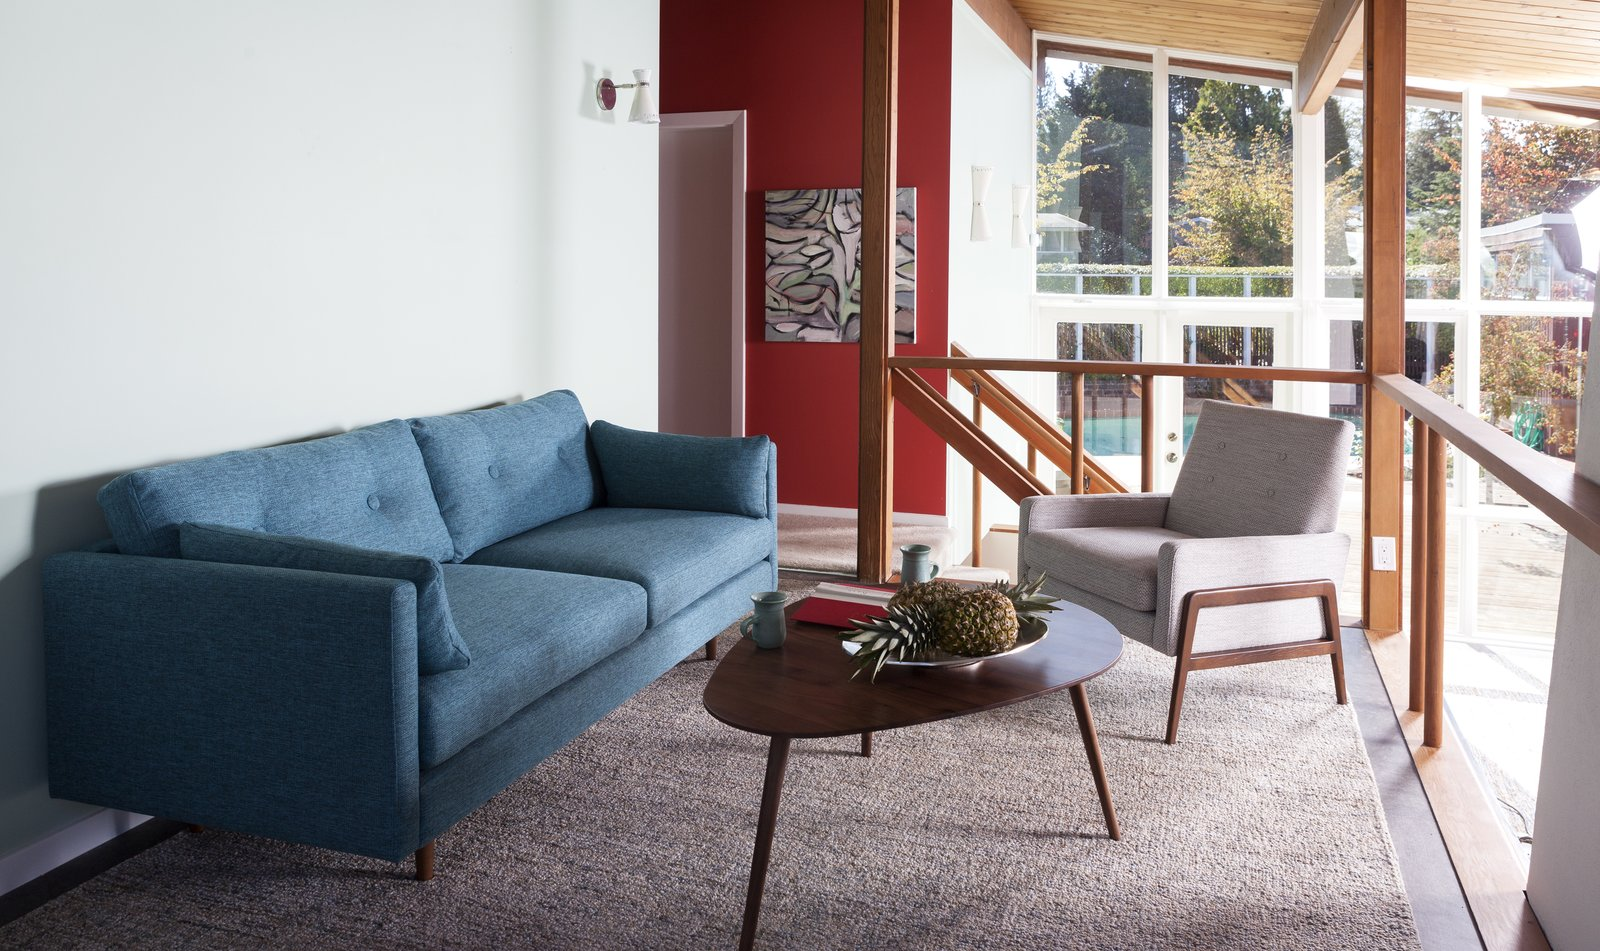 Embracing mid-century. Built in 1953, the Friedman House features a unique study/loft space that overlooks the open-concept first floor. Decorated in Article's mid-century modern pieces, it's like taking a step back through time. Anton sofa, $1149; Amoeba table, $299; Nord chair, $499